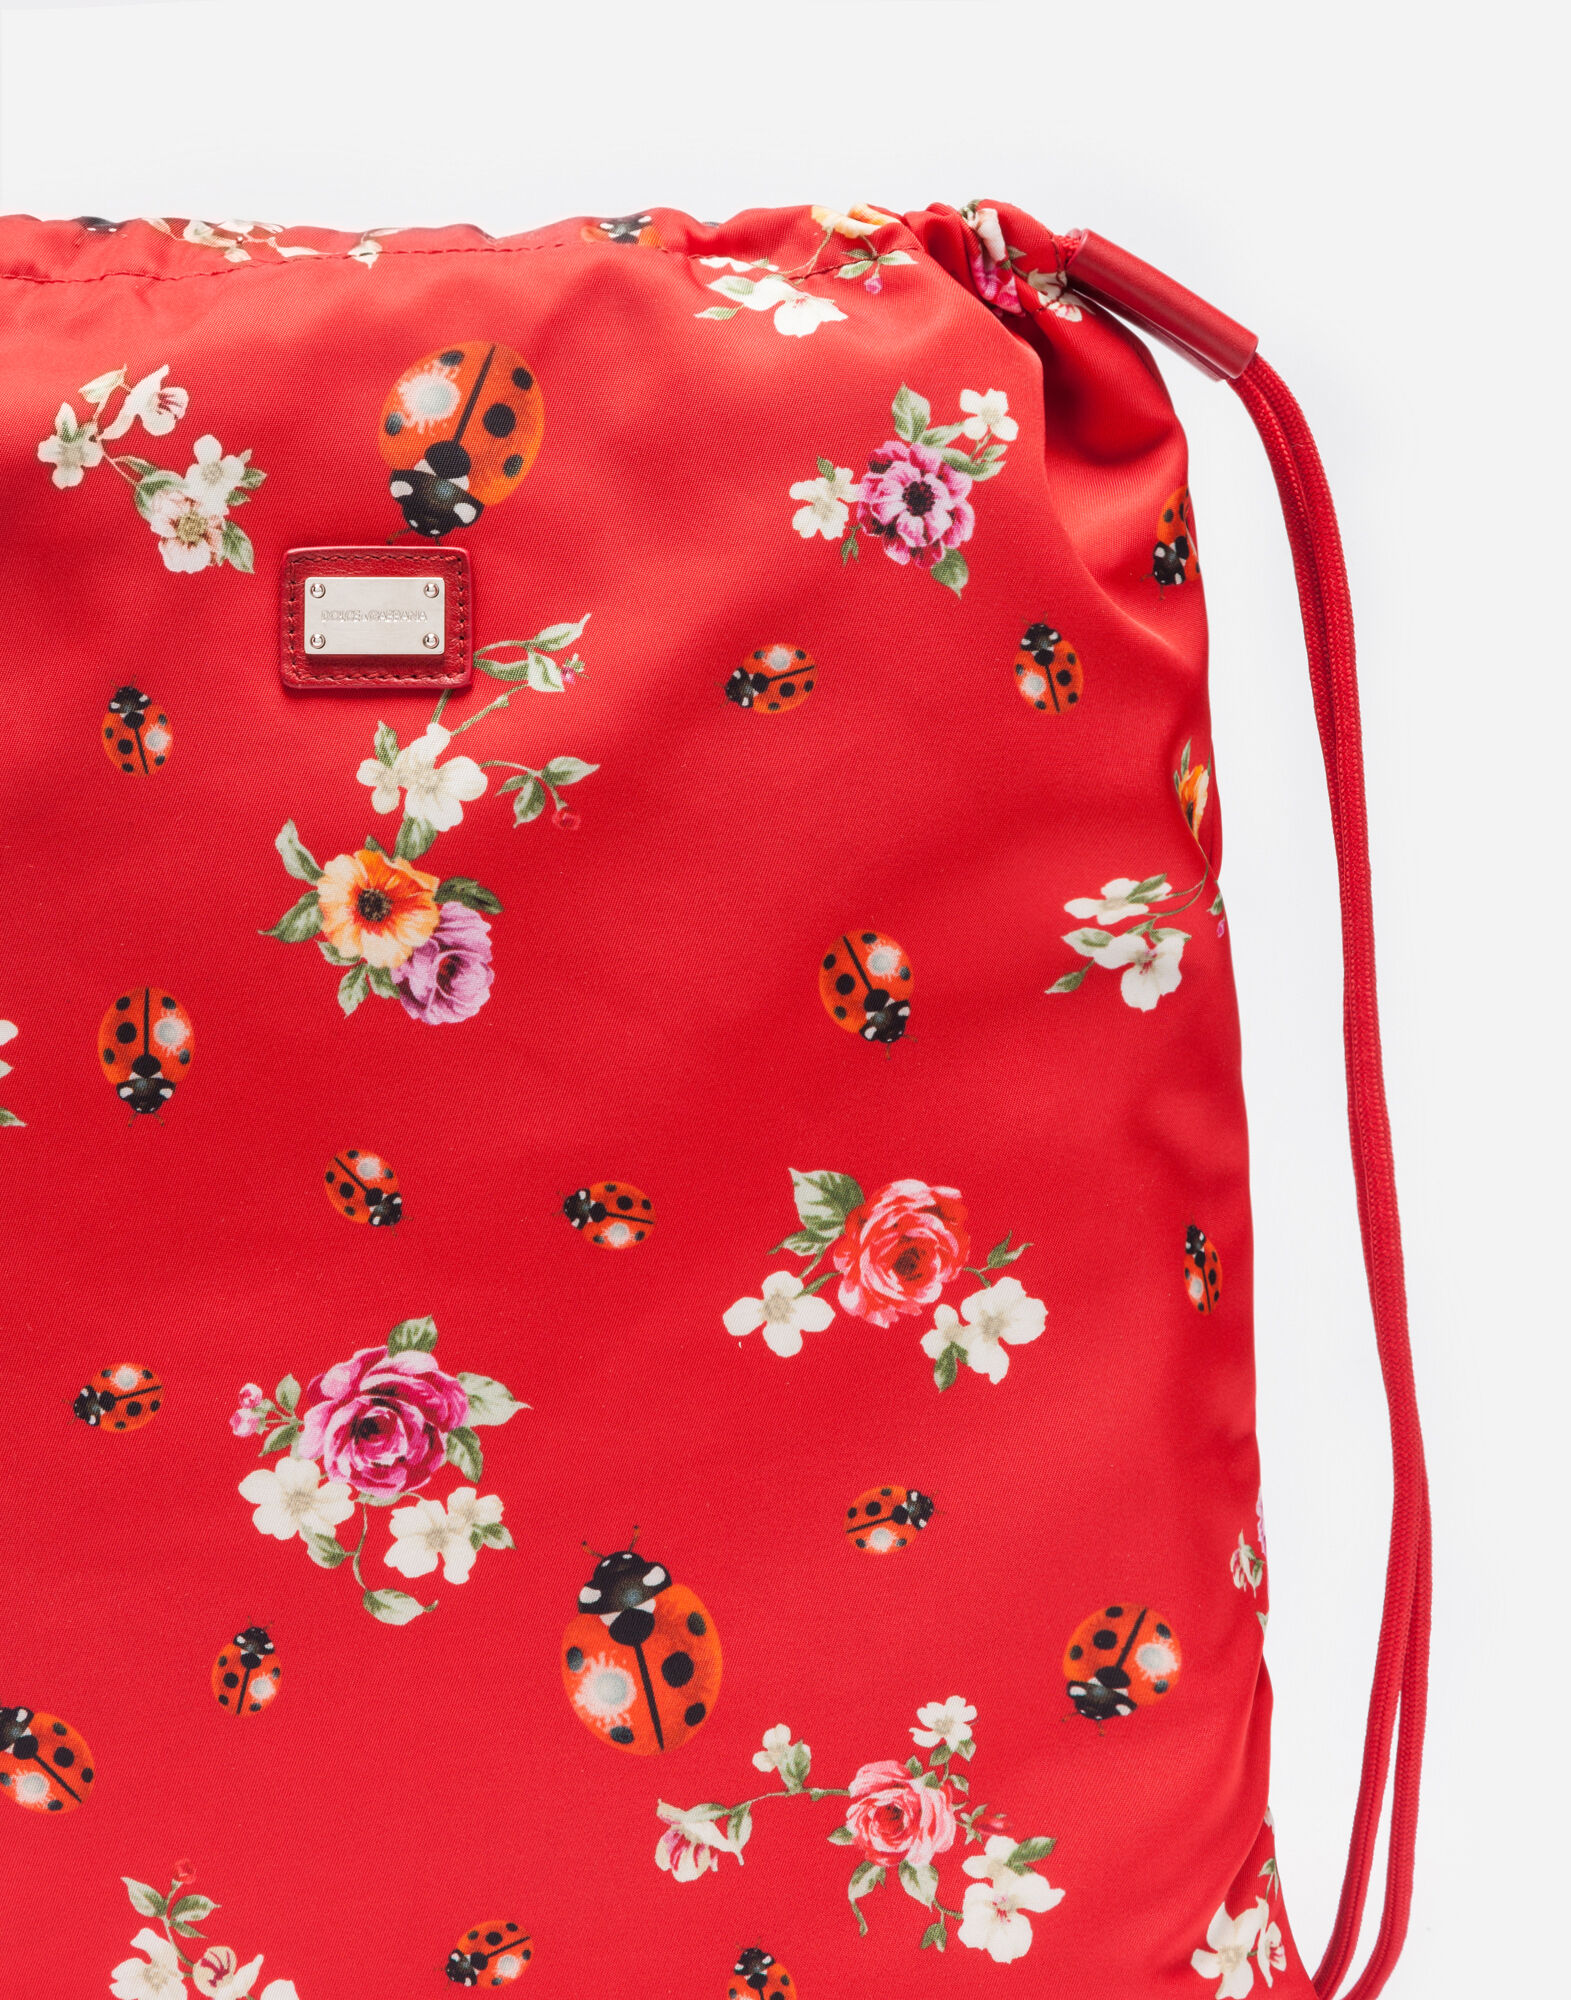 PRINTED NYLON BACKPACK WITH DRAWSTRING